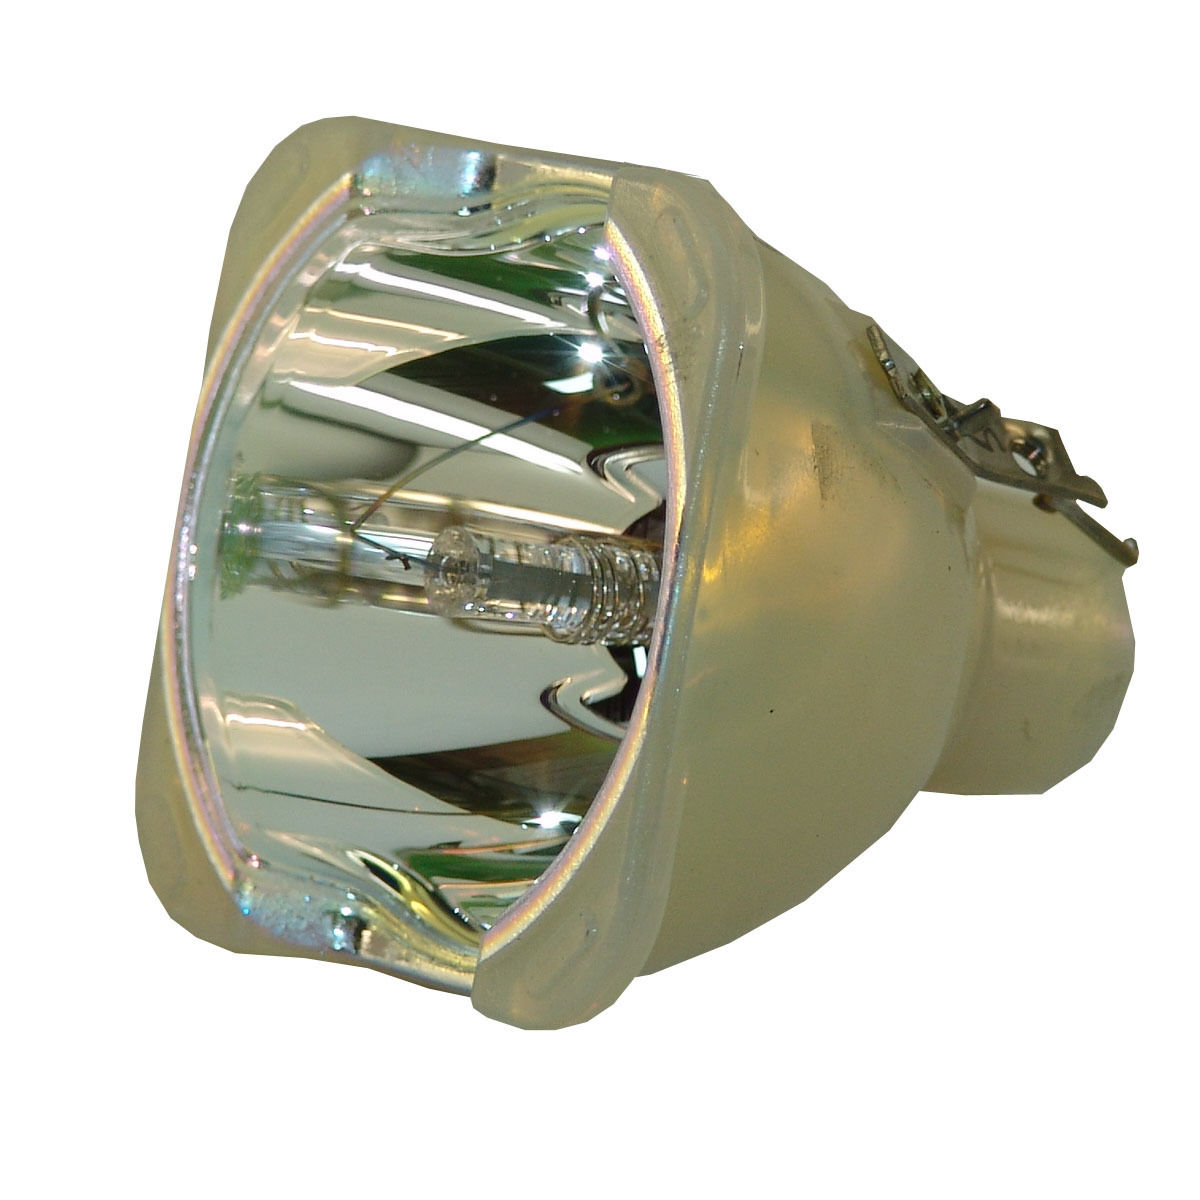 BL-FS300B SP.83C01G001 for OPTOMA EP1080 EP910 HD80 HD8000 HD800X HD803 HD81 HD81-LV TX1080 Projector Lamp Bulb Without HOusing